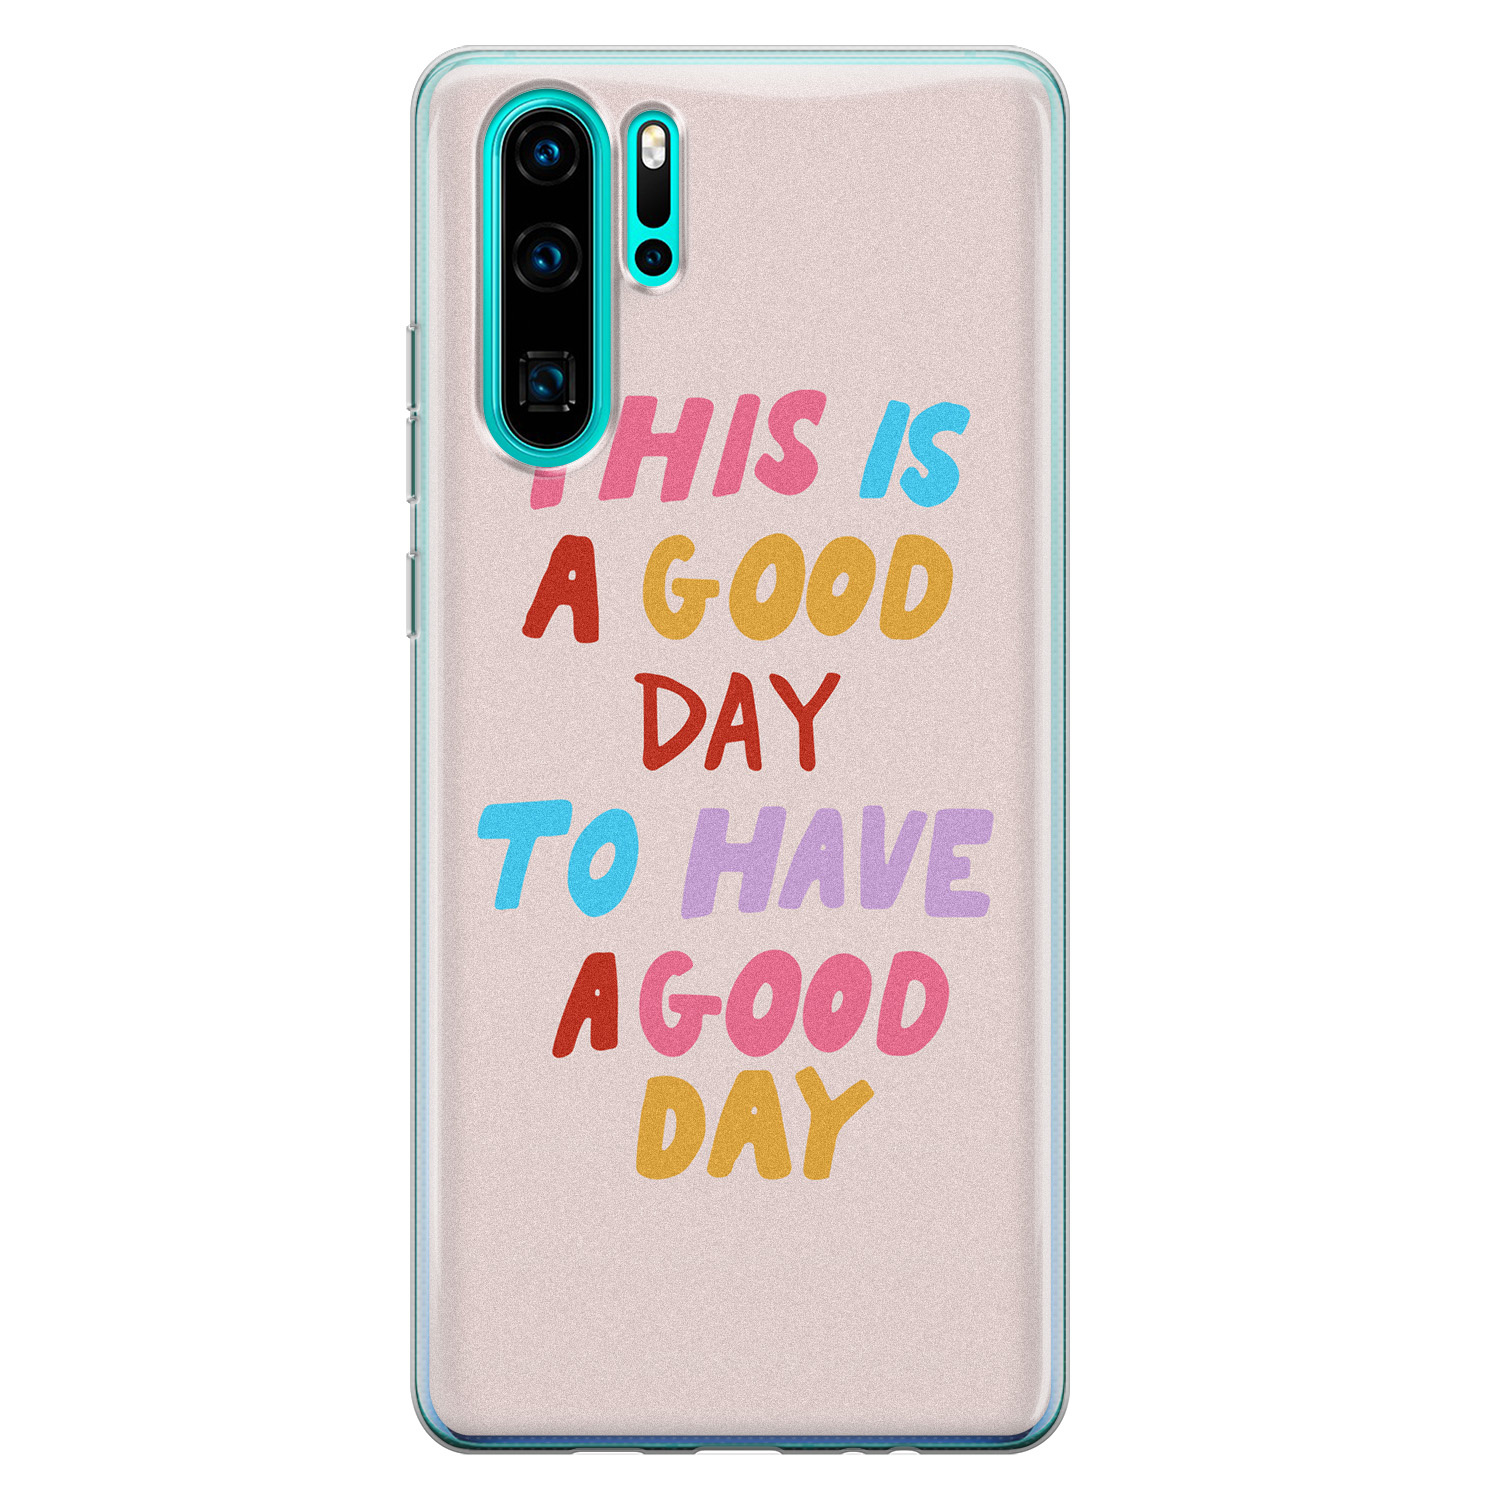 Huawei P30 Pro siliconen hoesje - This is a good day